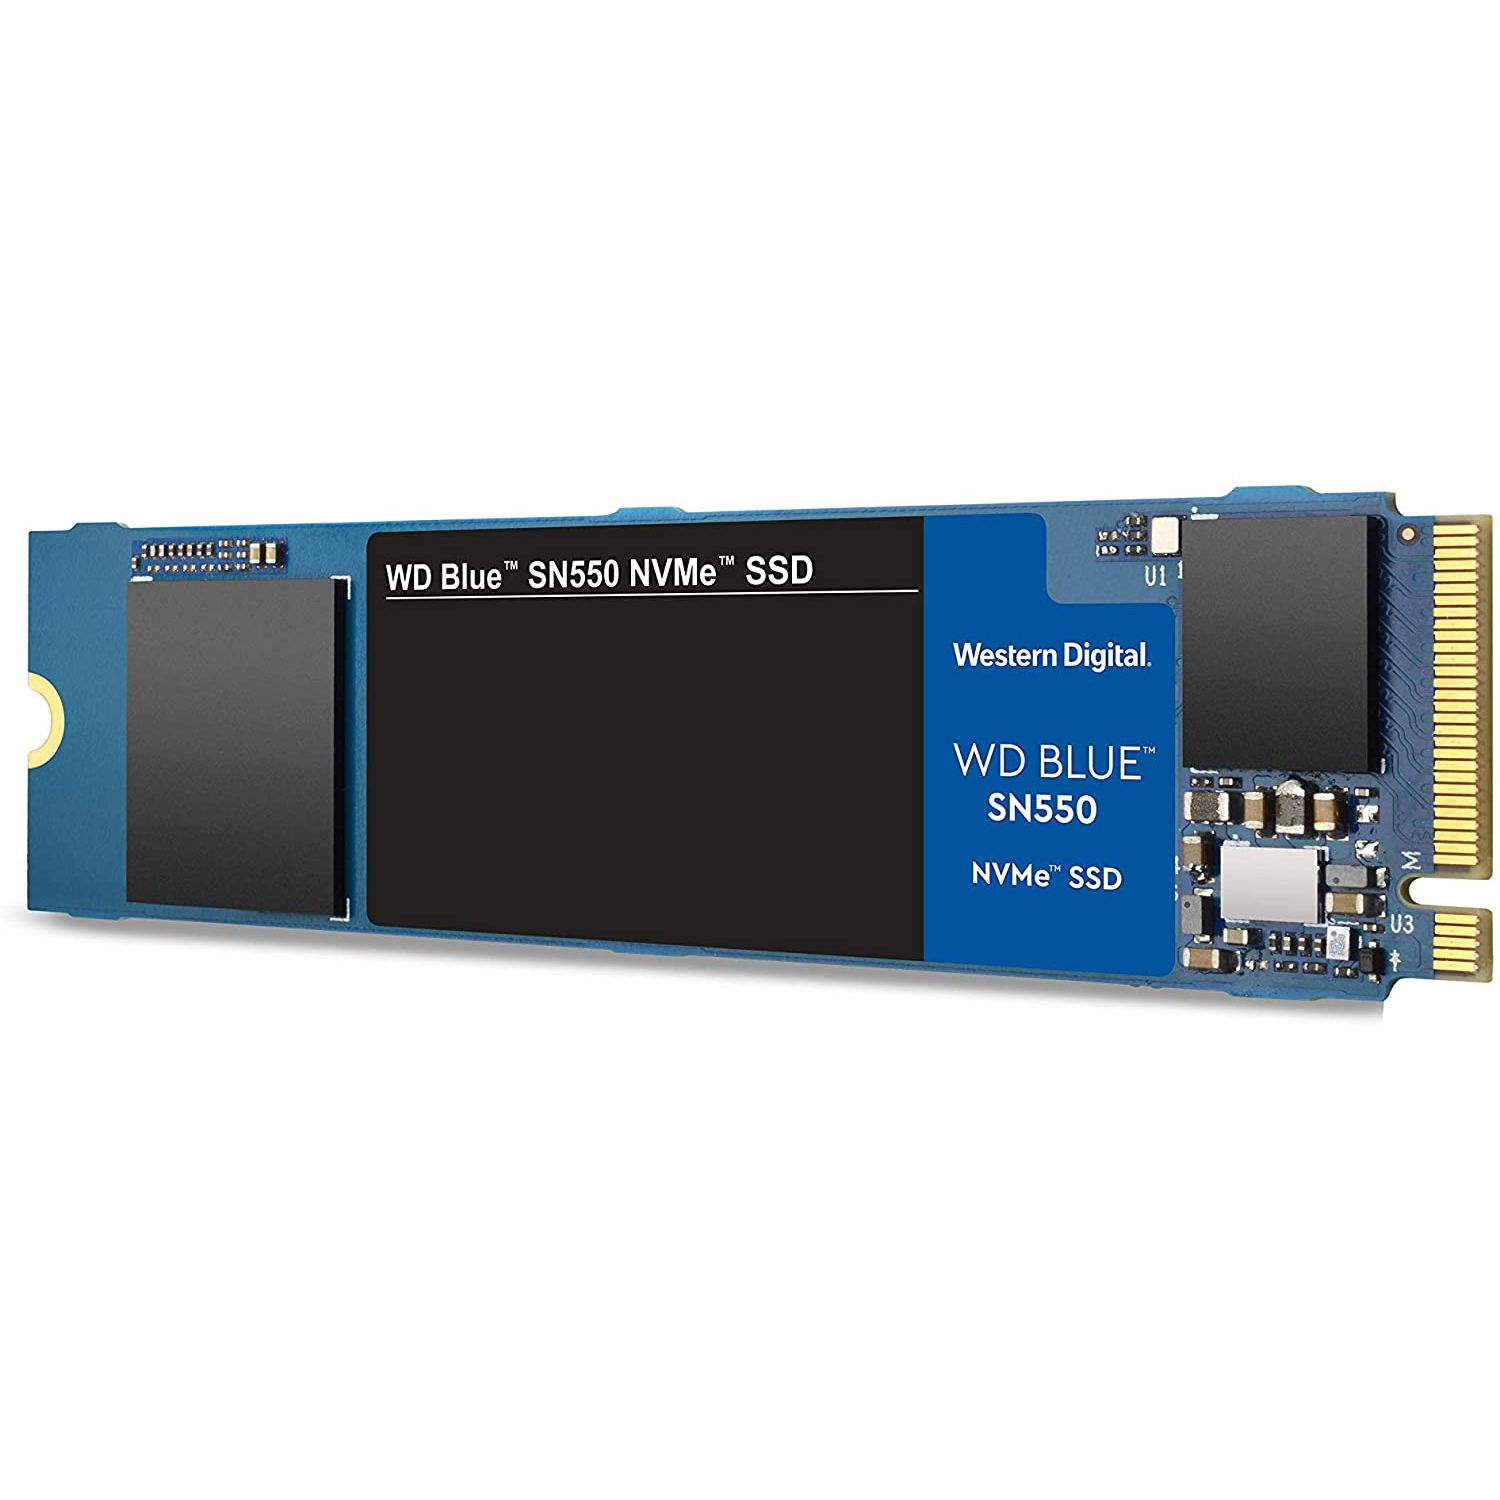 WD Blue SSD 1 TB / SN550 NVMe / M.2-2280 / PCIe Gen3x4, 8 Gb/s / Read up to 2400MB/s - Write up to 1750MB/s - Up to 300K/240K IOPS (màu xanh Blue)